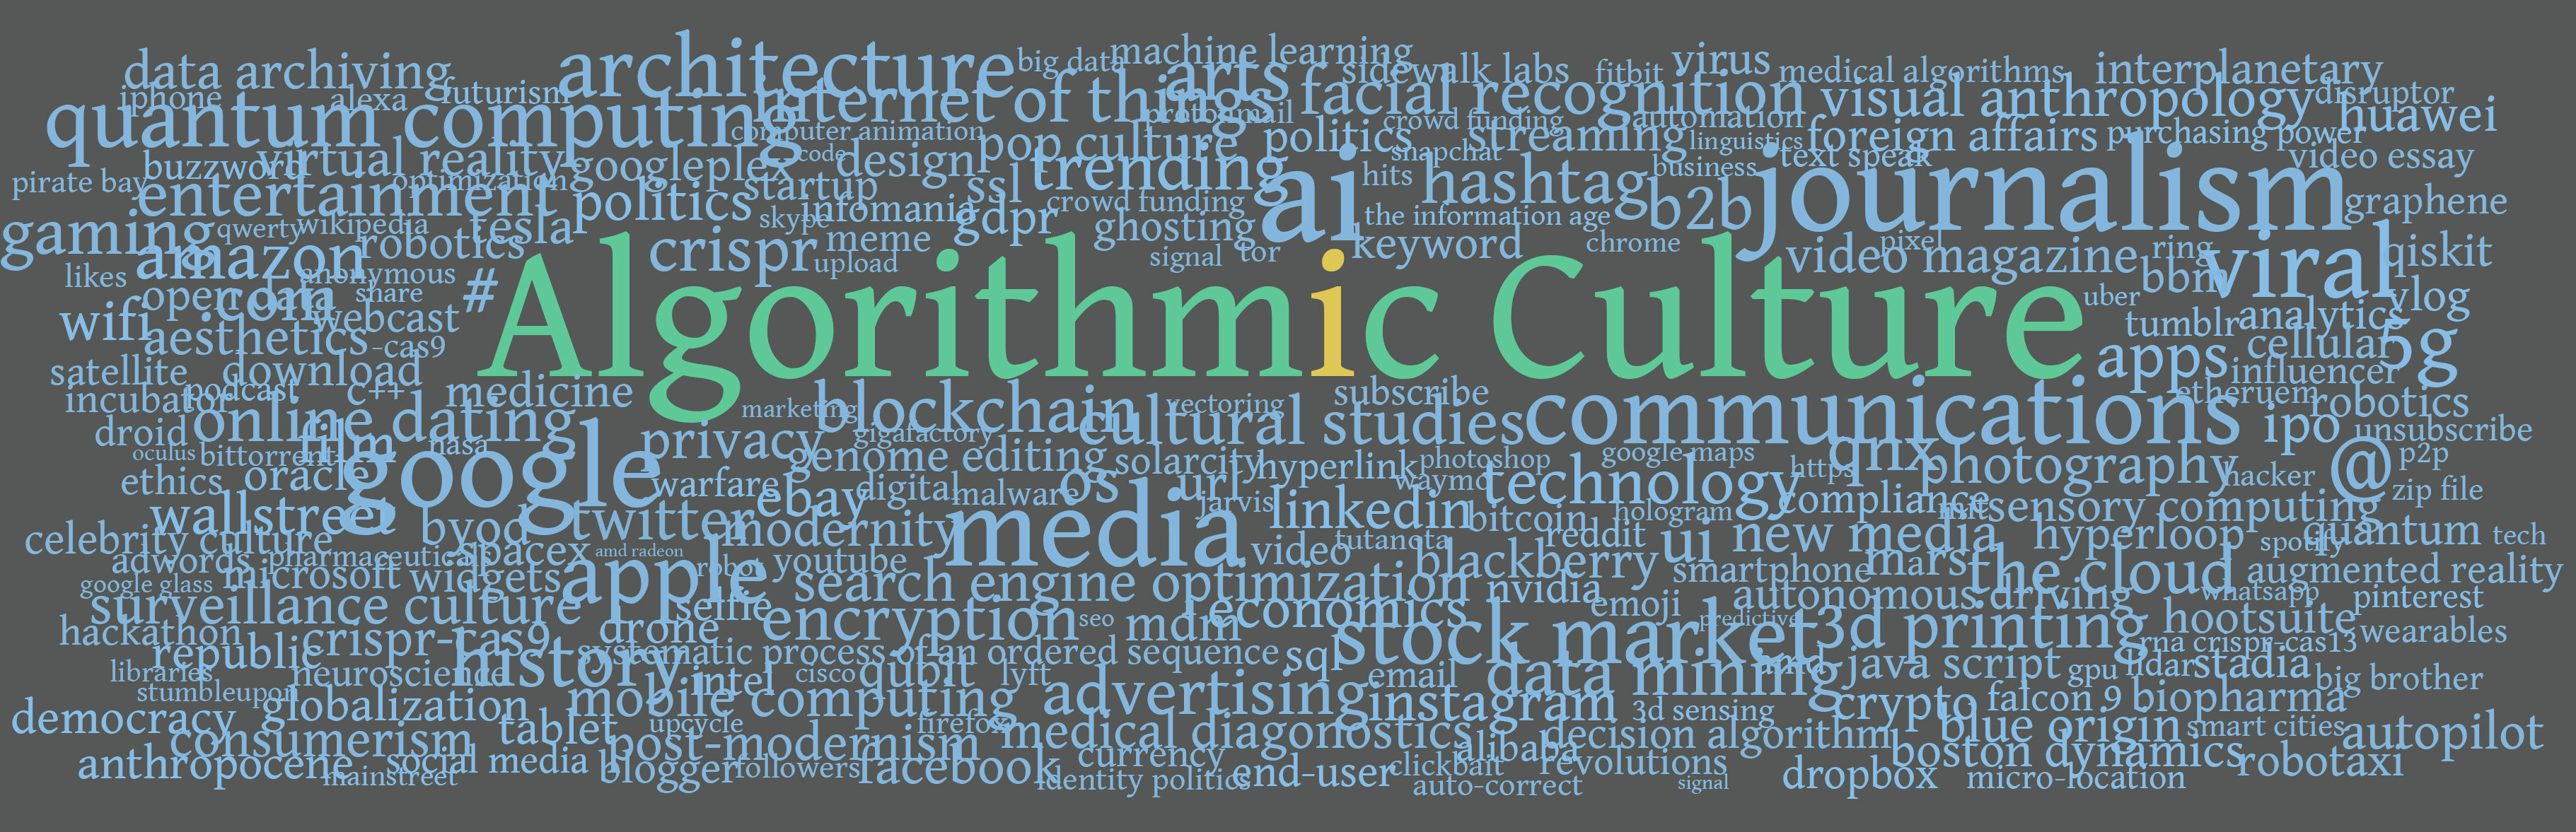 Algorithmic Culture Magazine